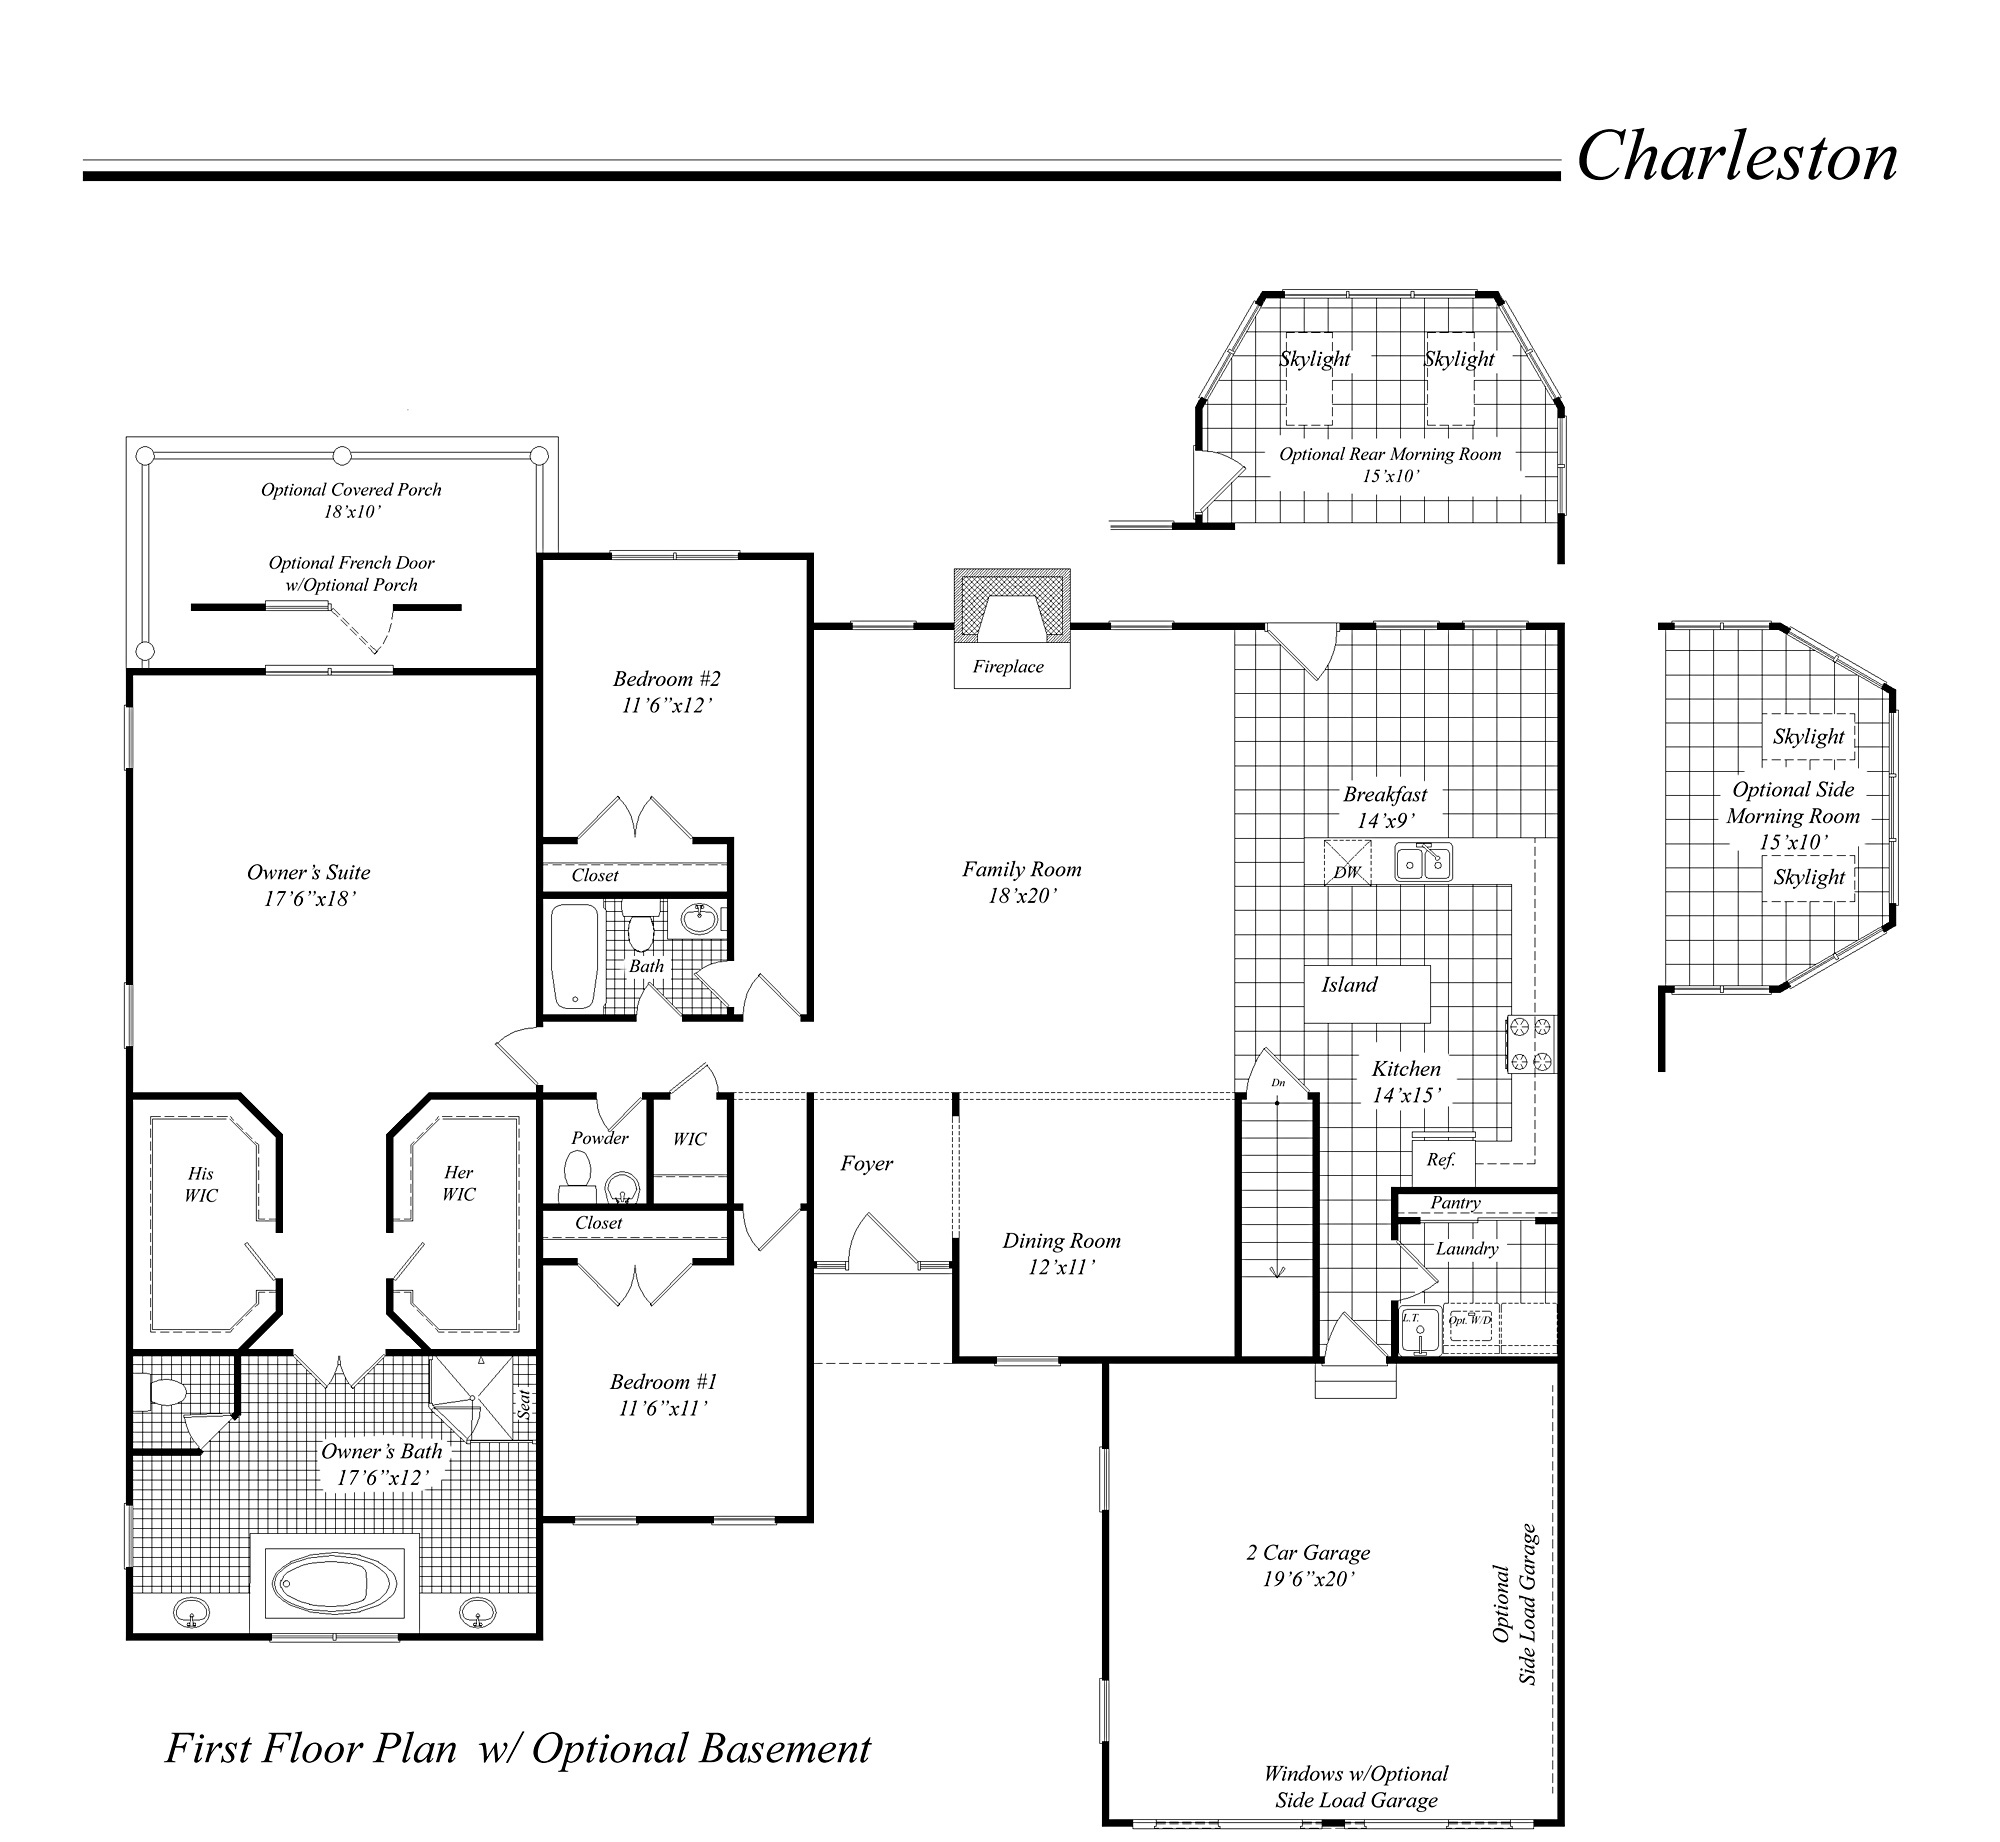 House illustration home rendering classic homes floor plan series howard digital - Plan floor design ...